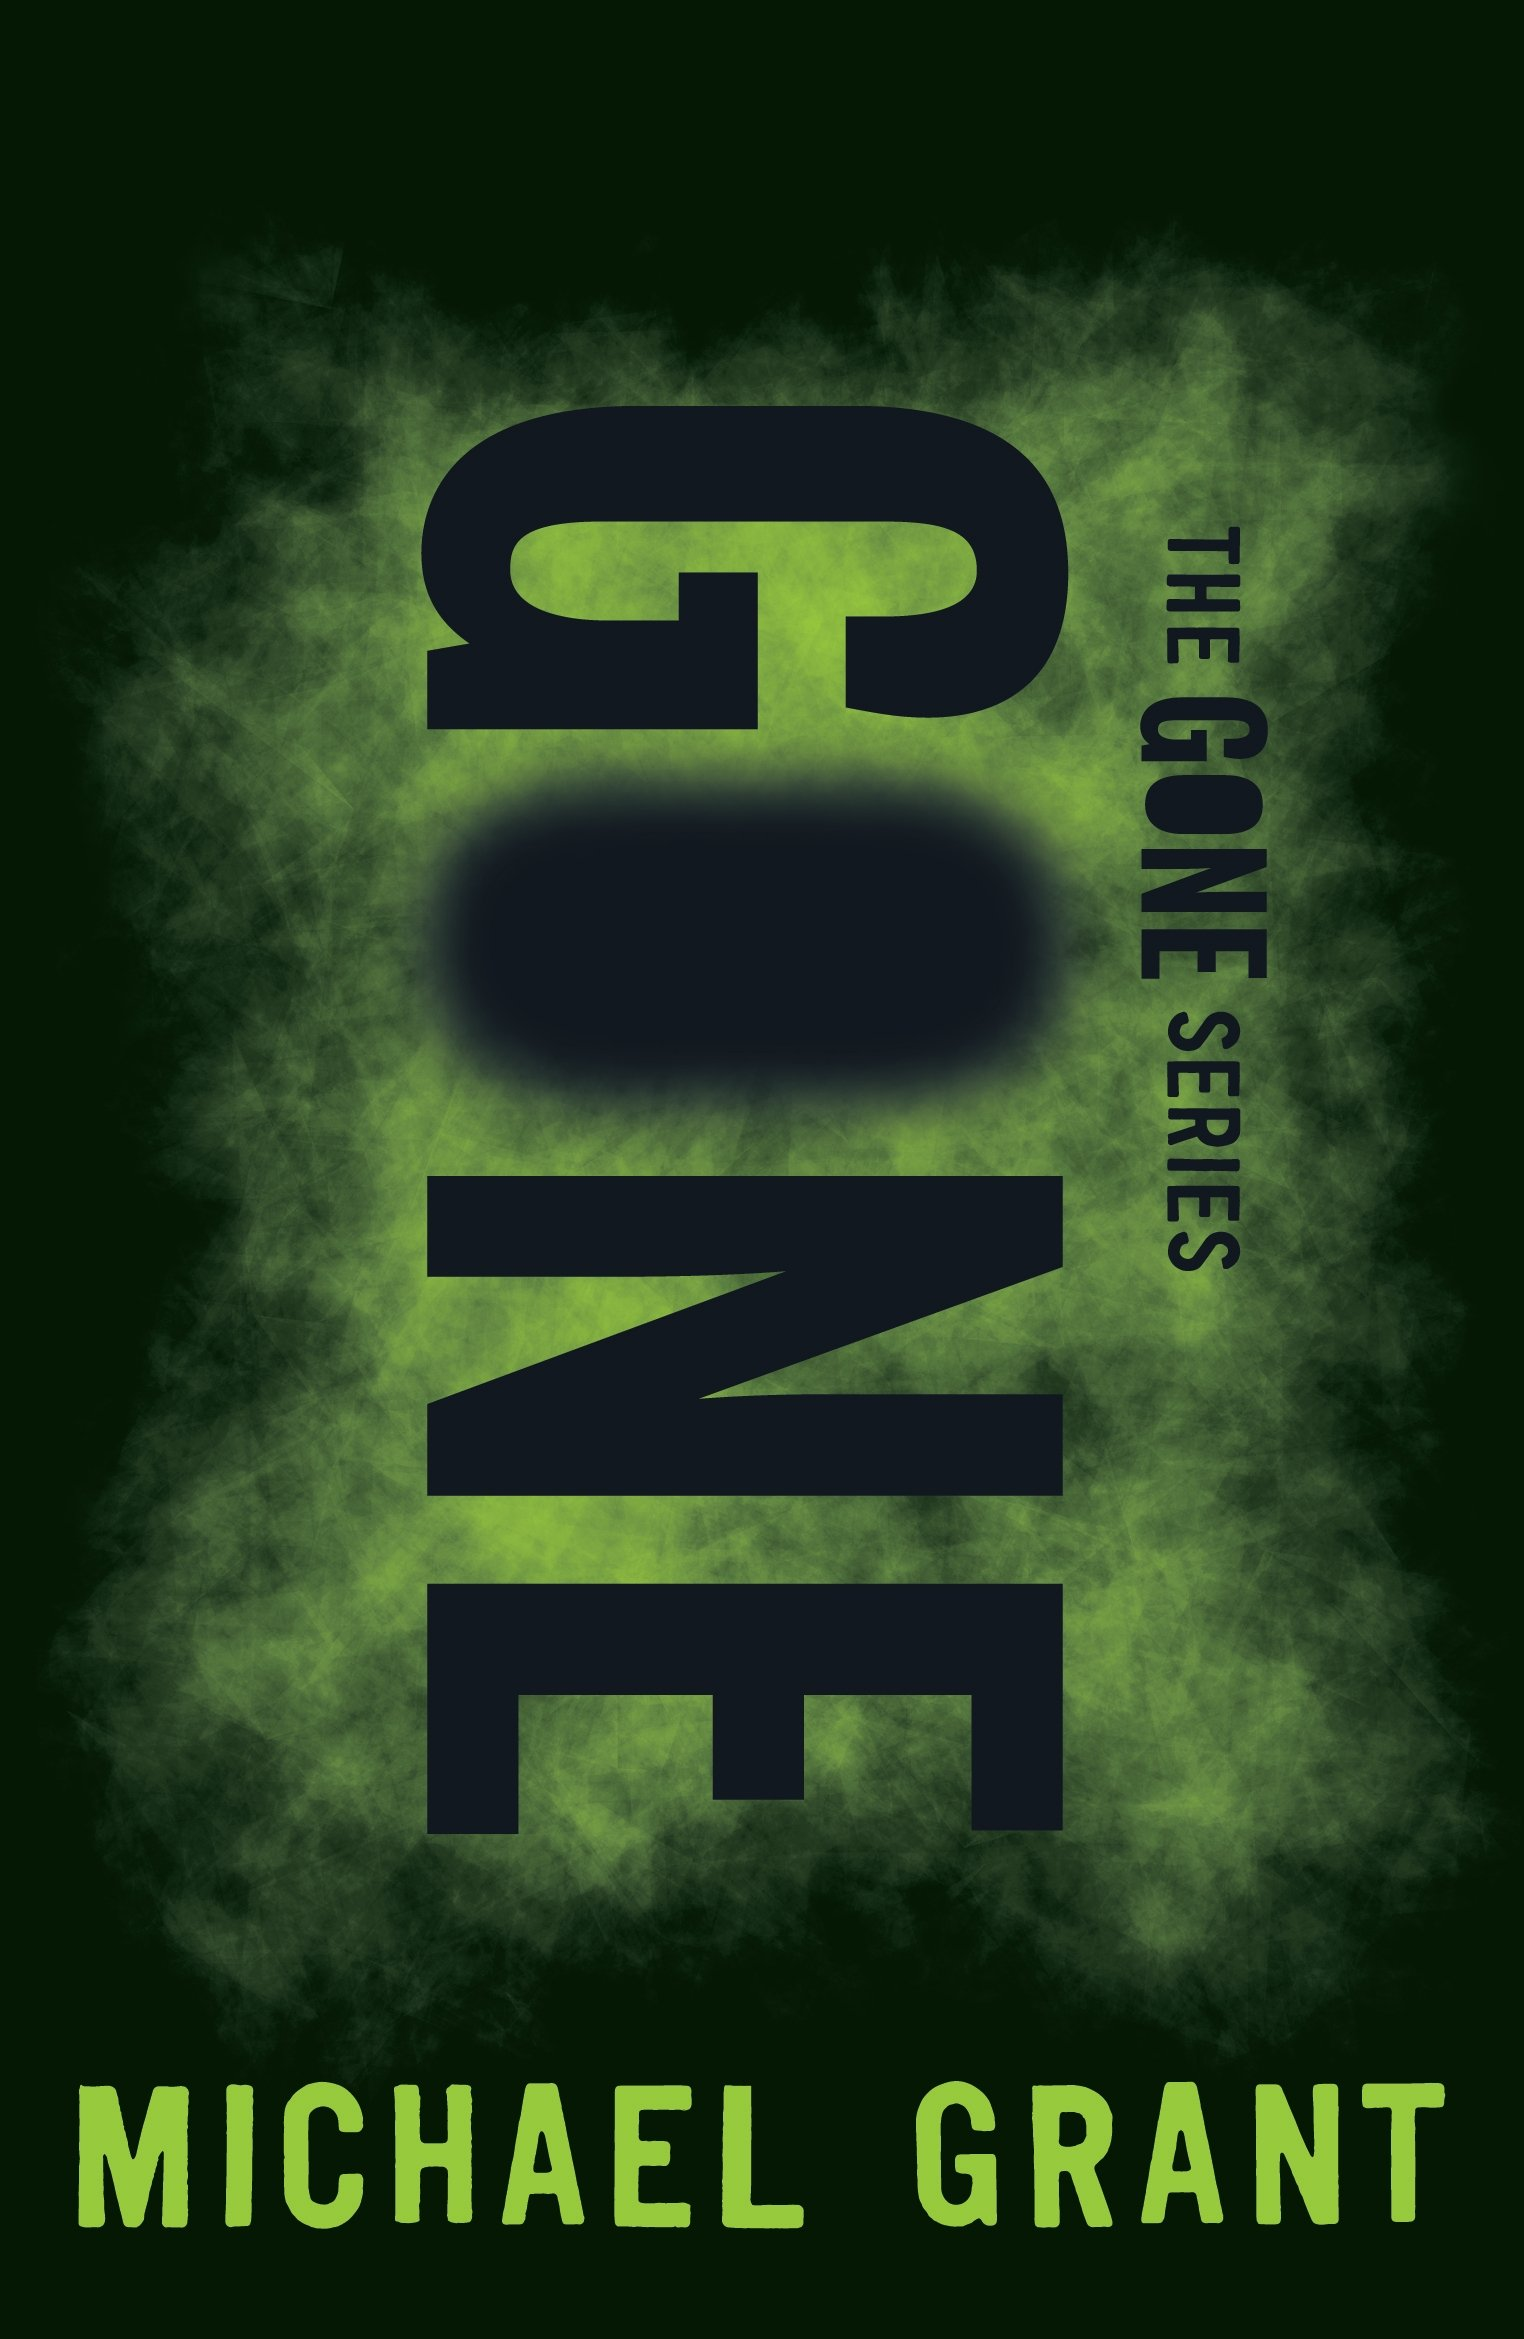 Buy Gone (The Gone Series) Book Online at Low Prices in India | Gone (The Gone Series) Reviews & Ratings - Amazon.in